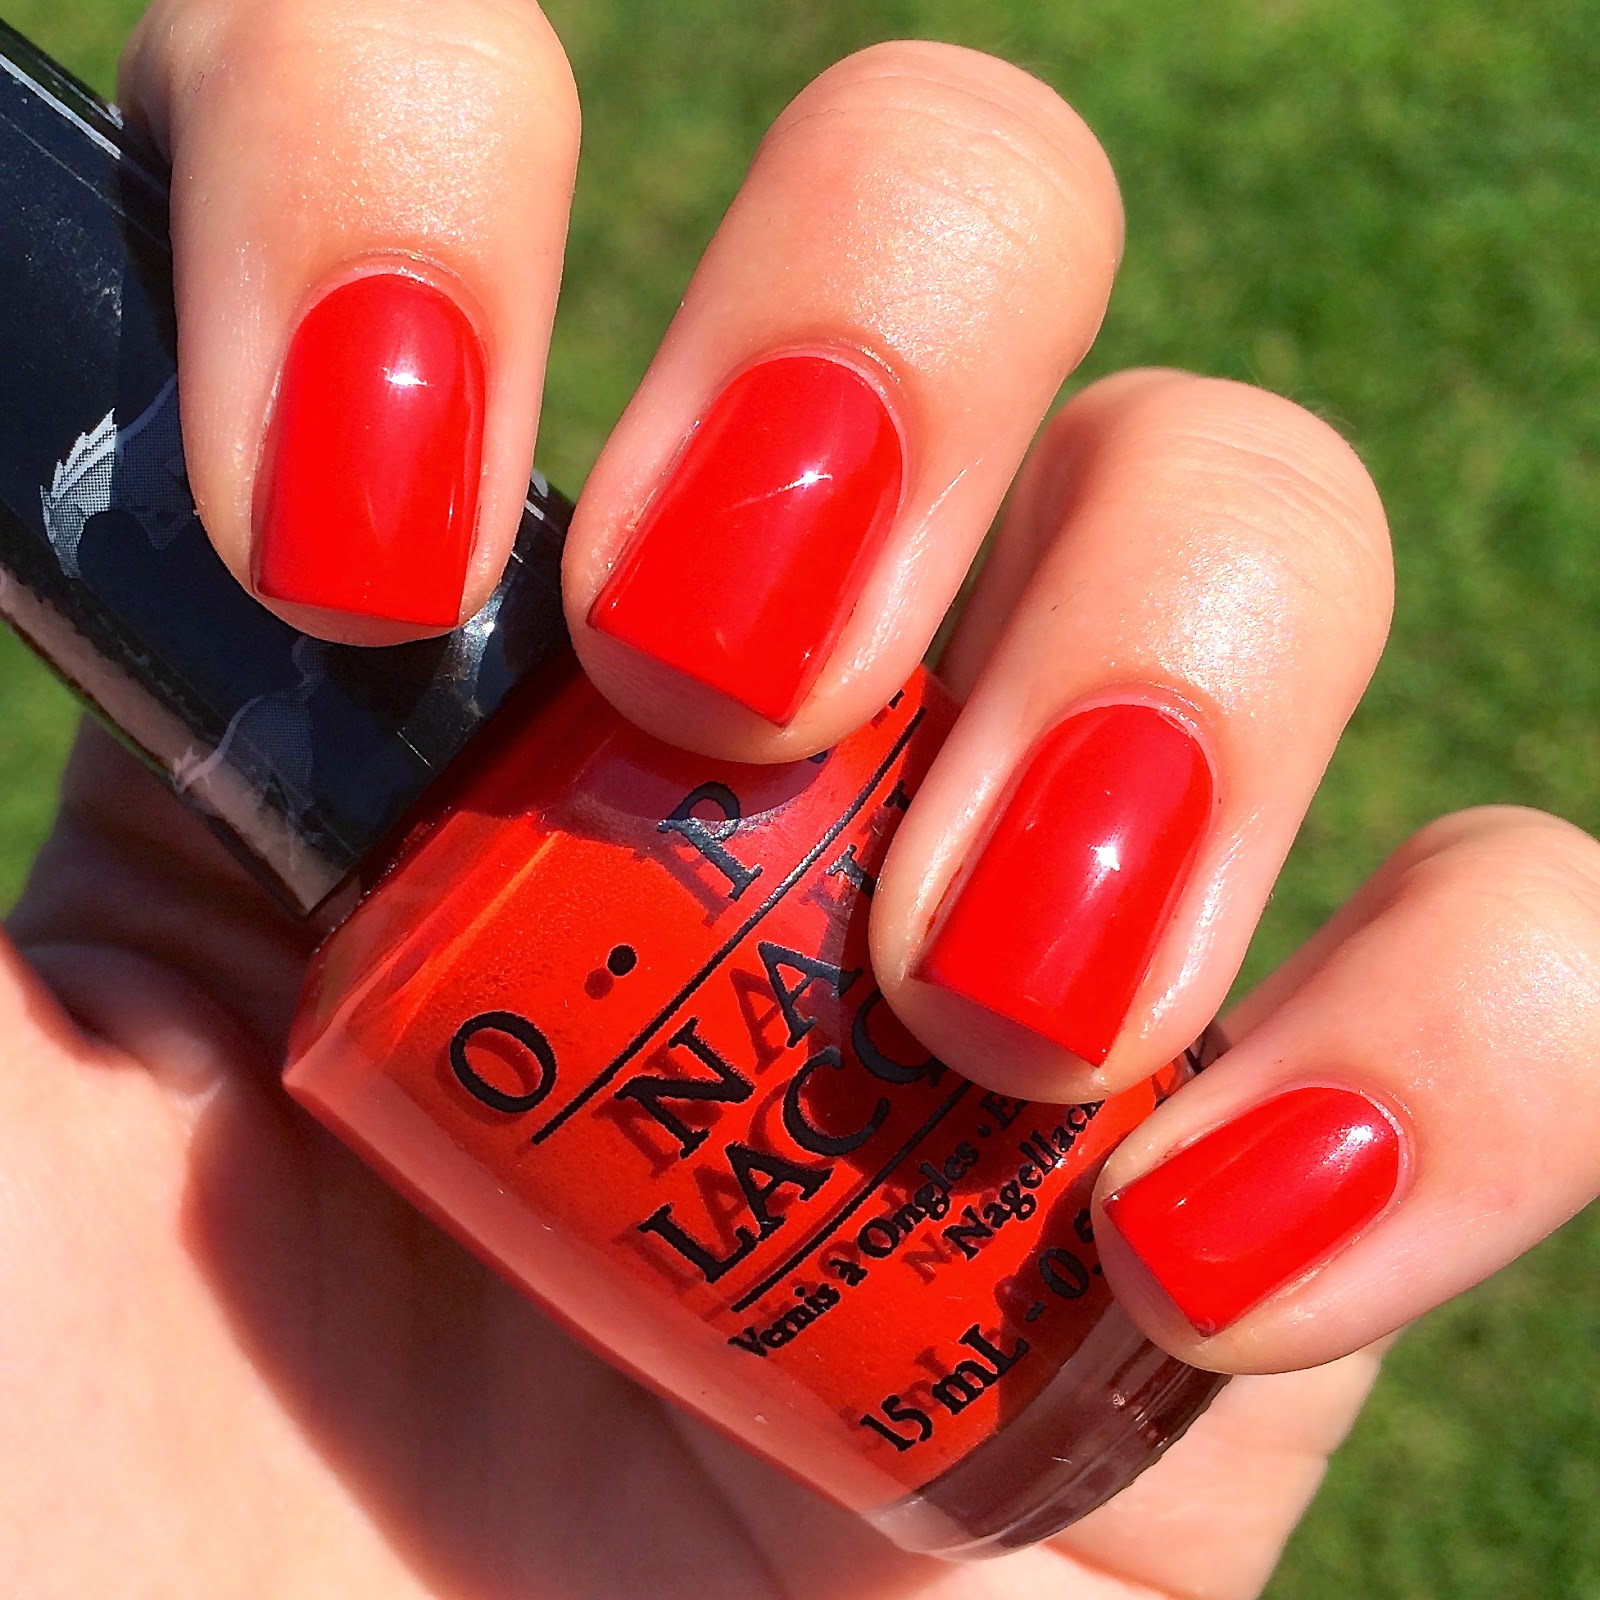 Nails Always Polished: OPI Race Red